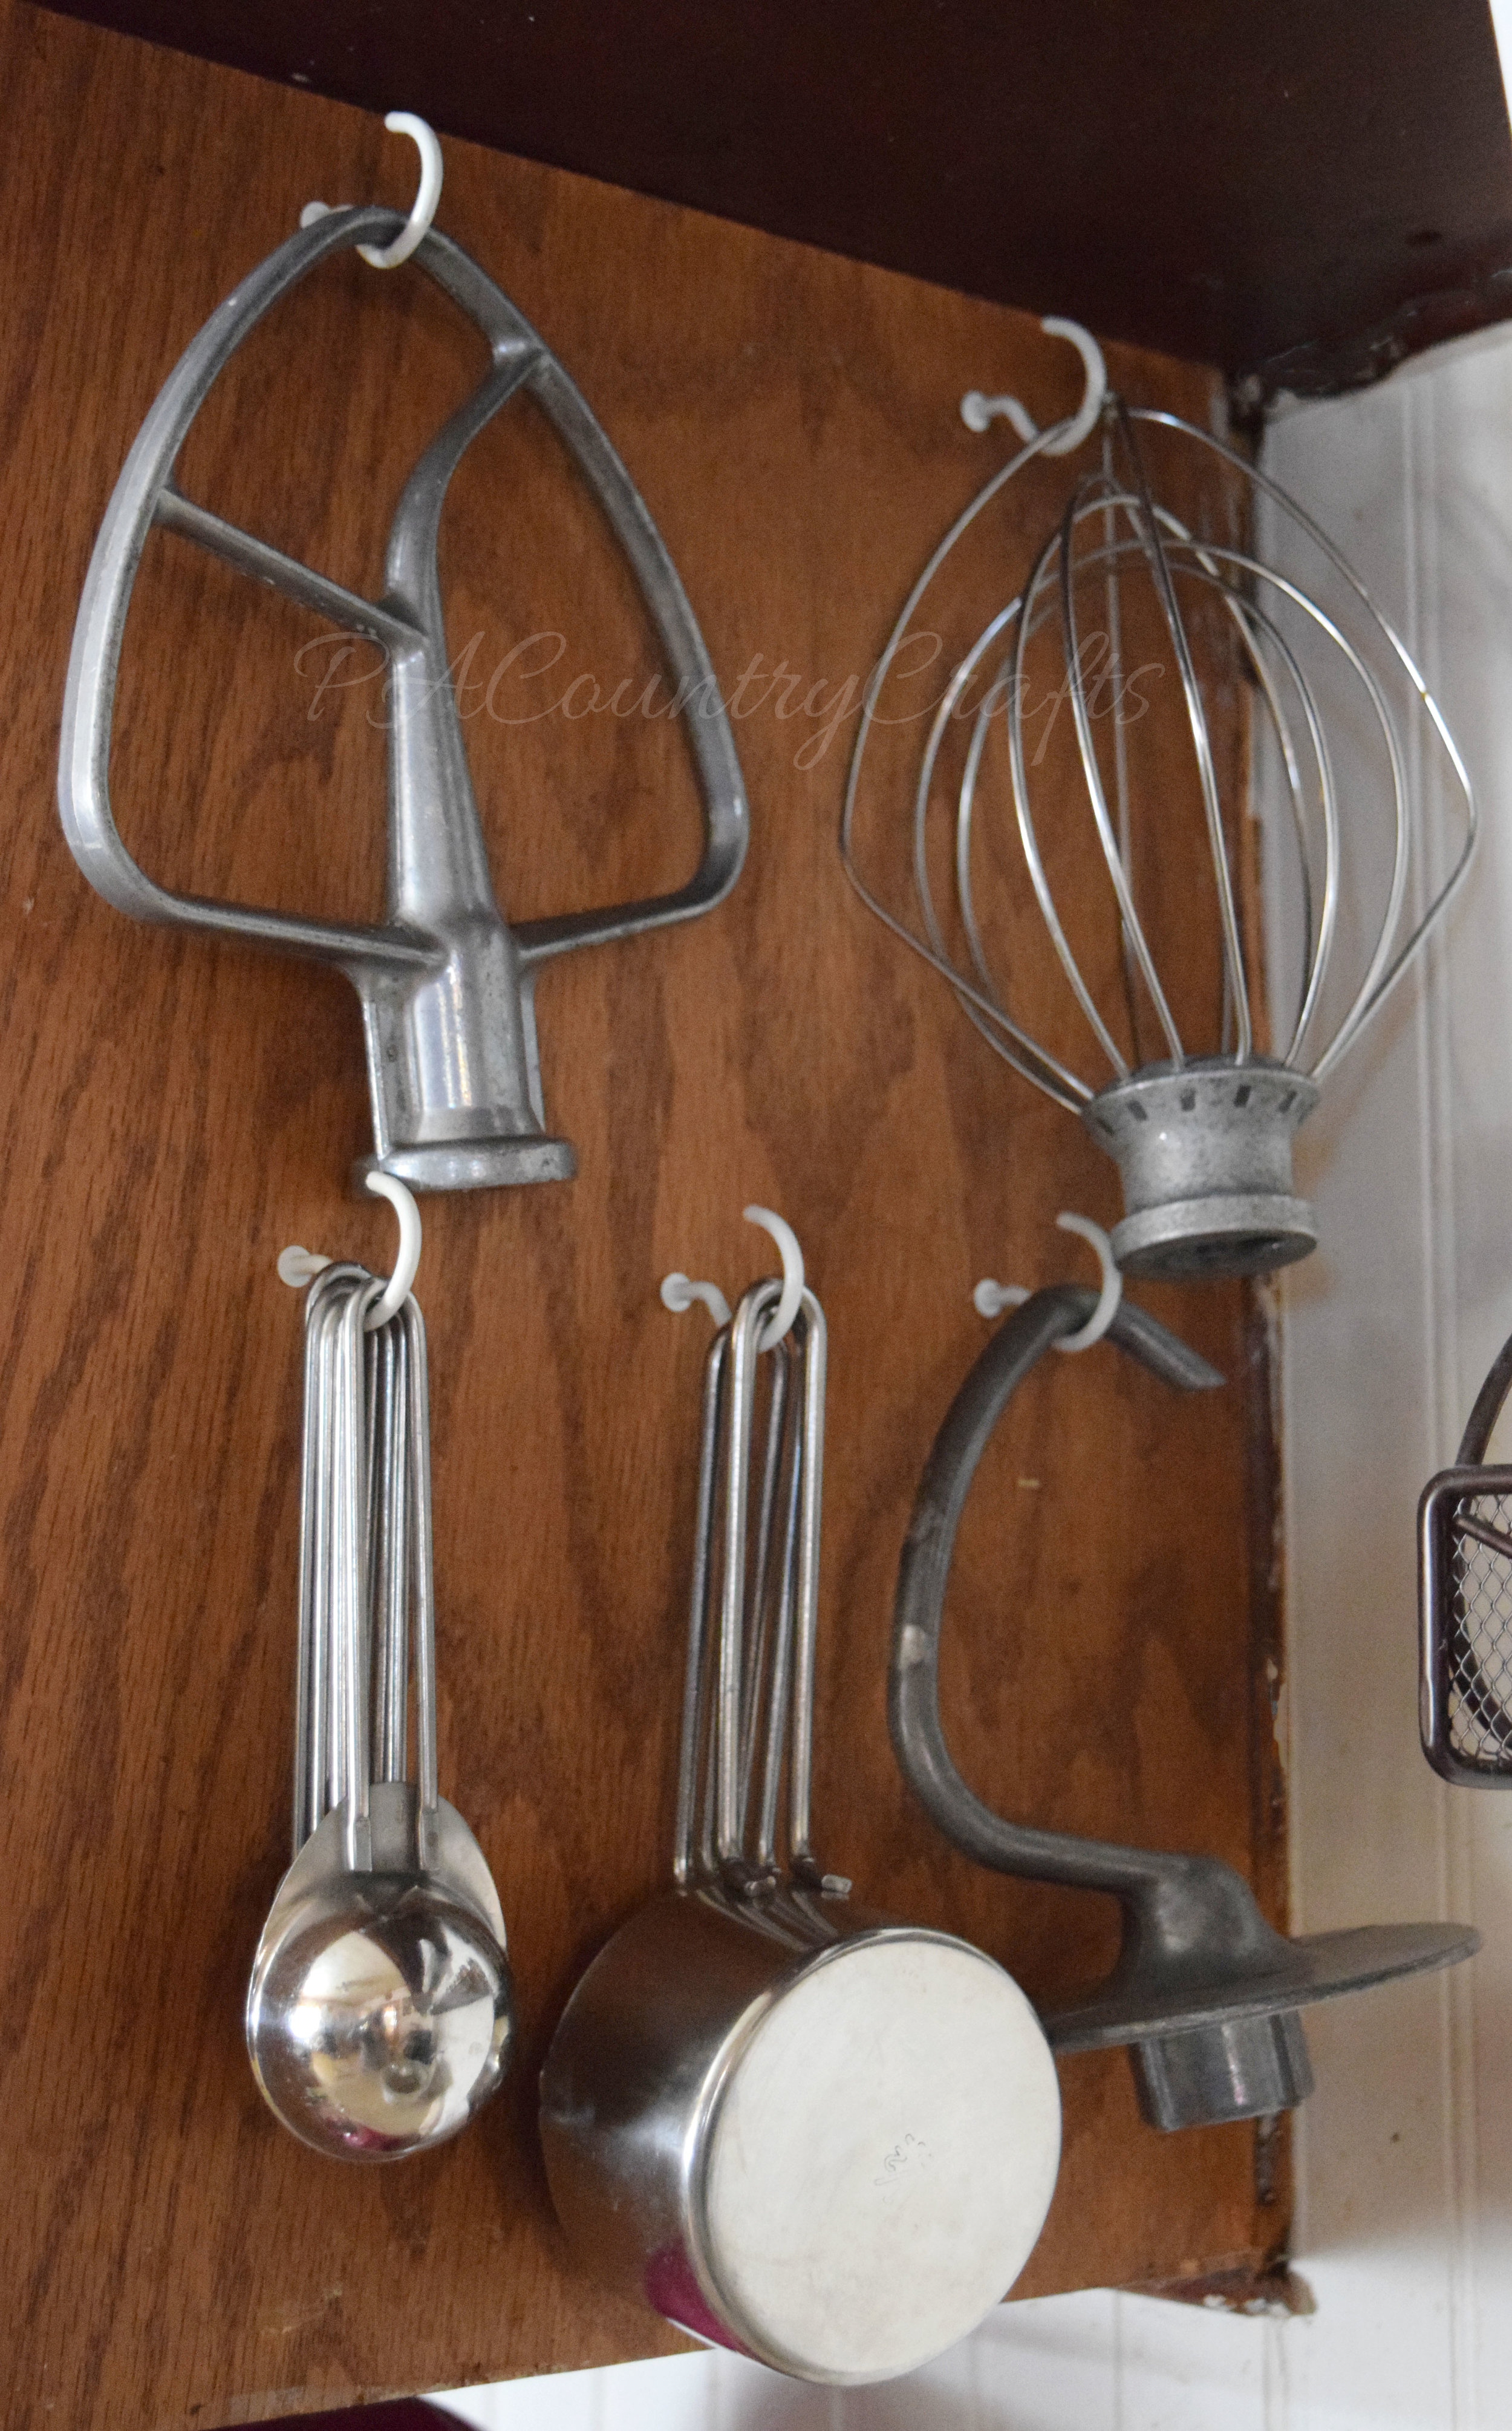 Hang mixer attachments and measuring cups from hooks on the side of a cupboard.